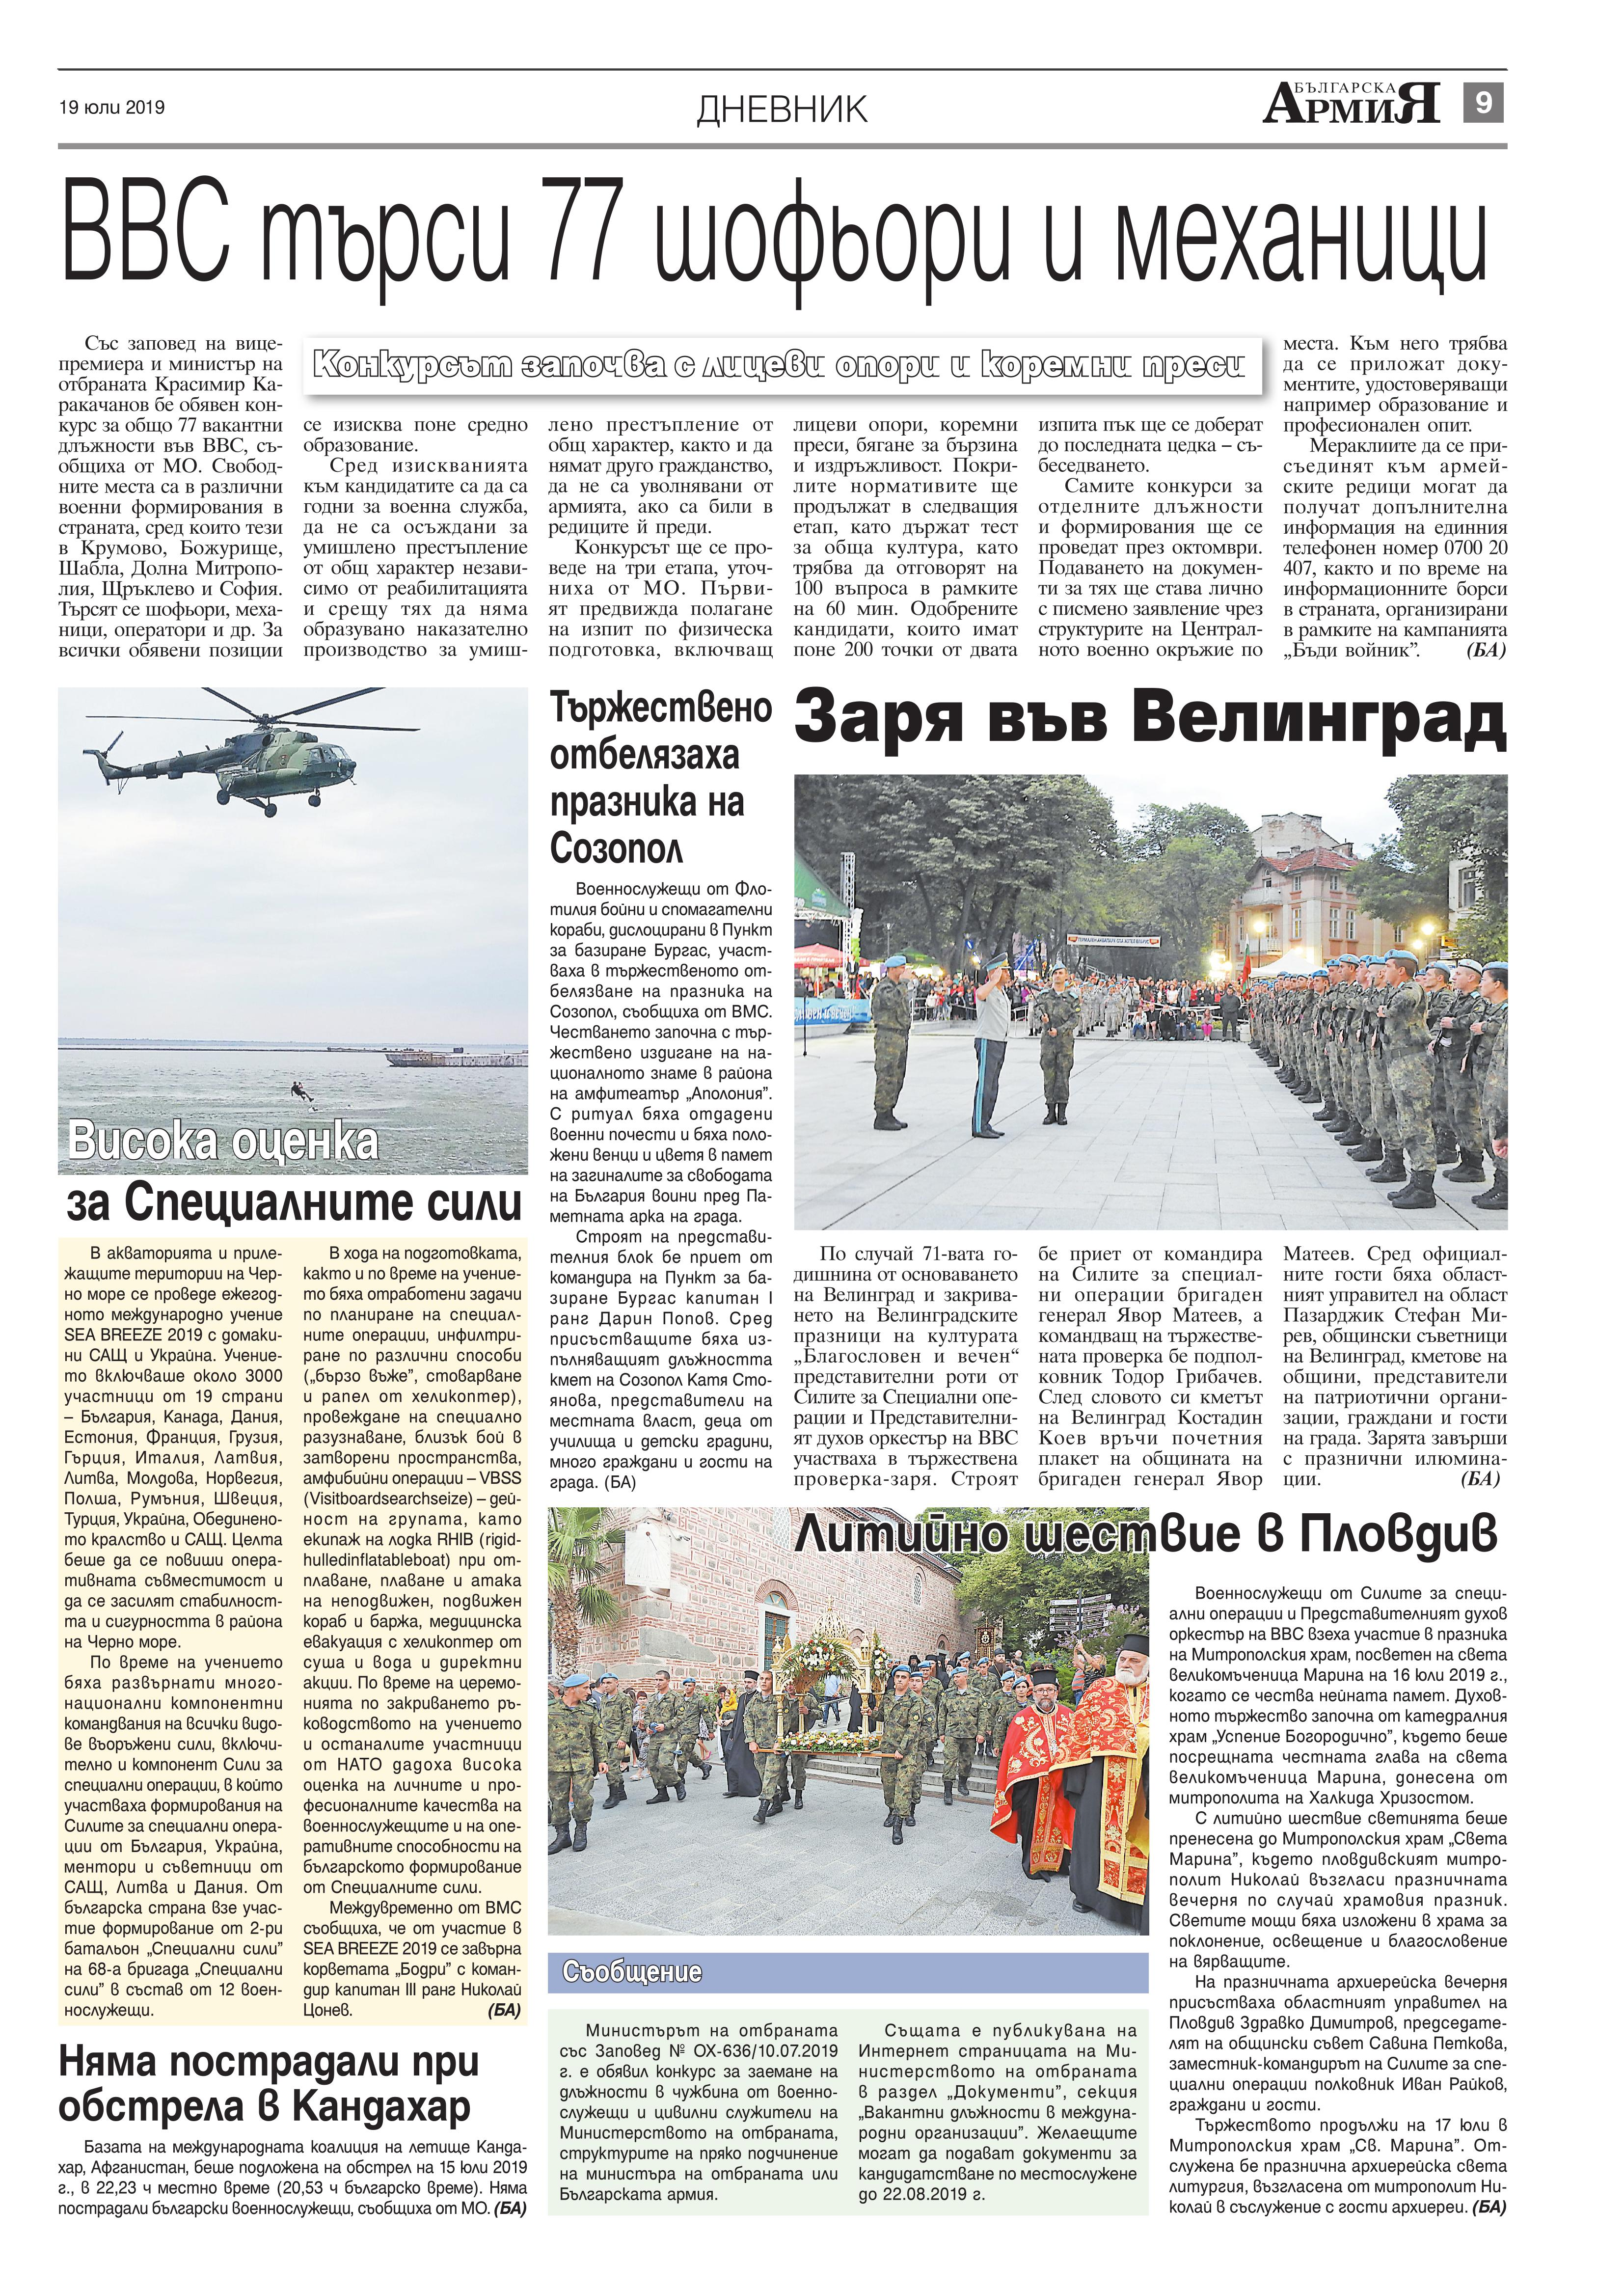 https://www.armymedia.bg/wp-content/uploads/2015/06/09.page1_-101.jpg